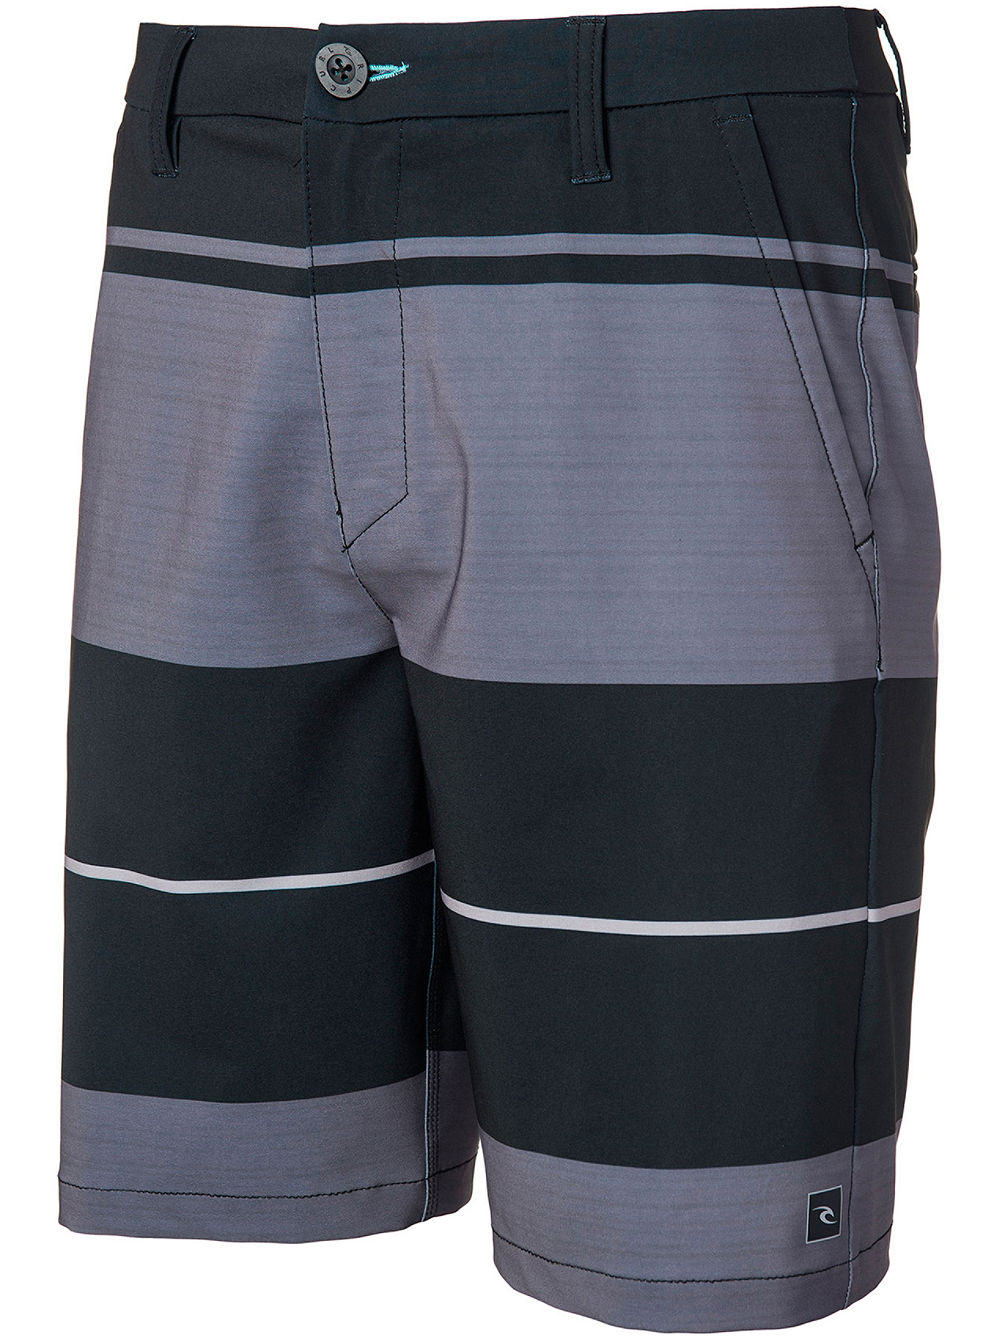 "Challenger Boardwalk 20"" Shorts"